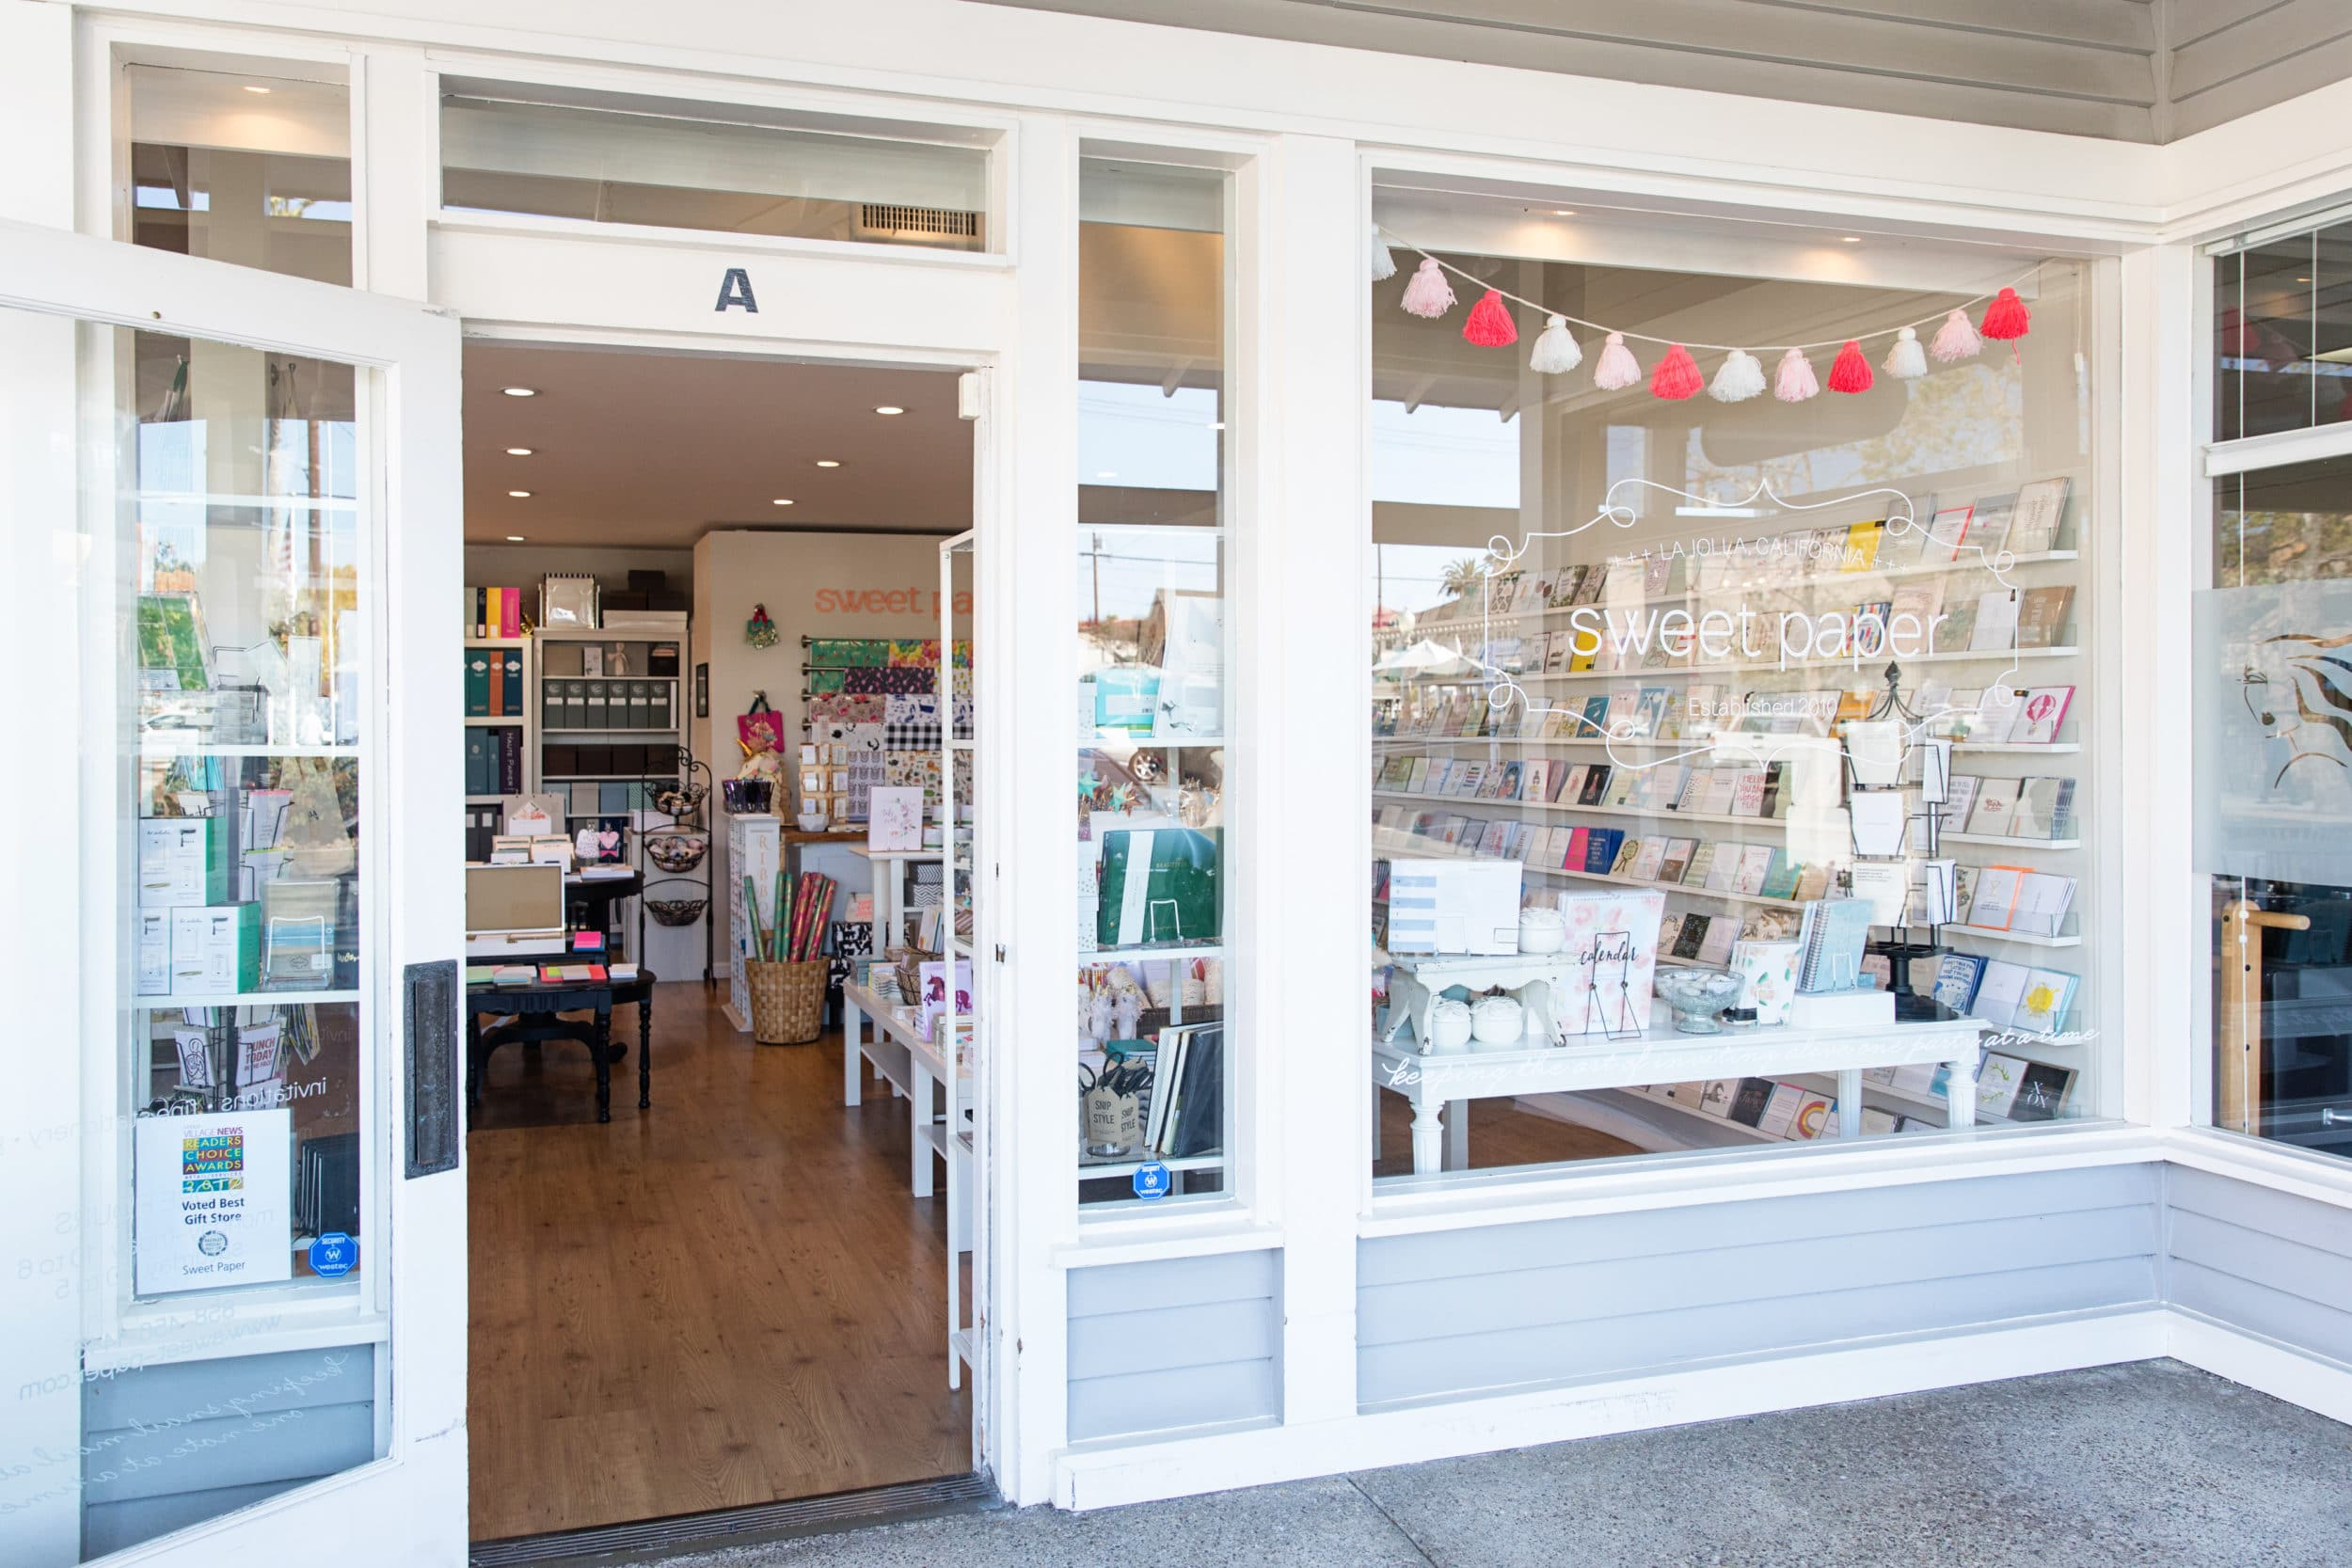 Best La Jolla shopping: The exterior of the Sweet Paper gift shop on Fay Avenue.